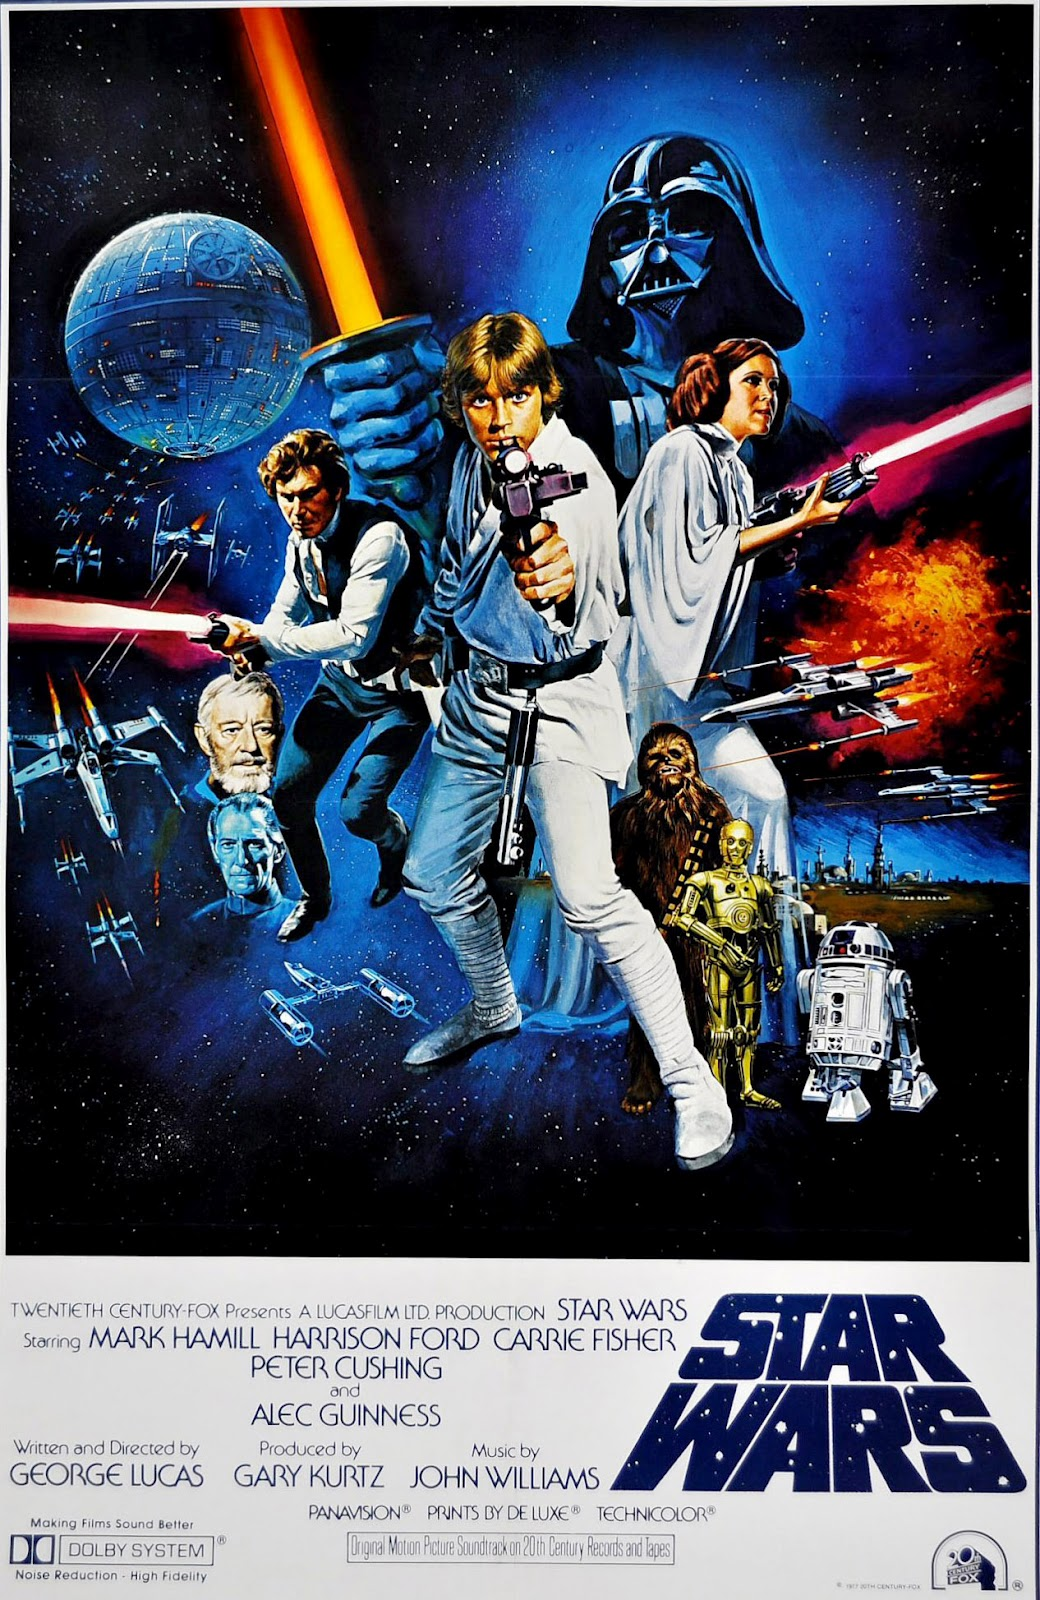 The Geeky Nerfherder: Movie Poster Art: Star Wars (1977)